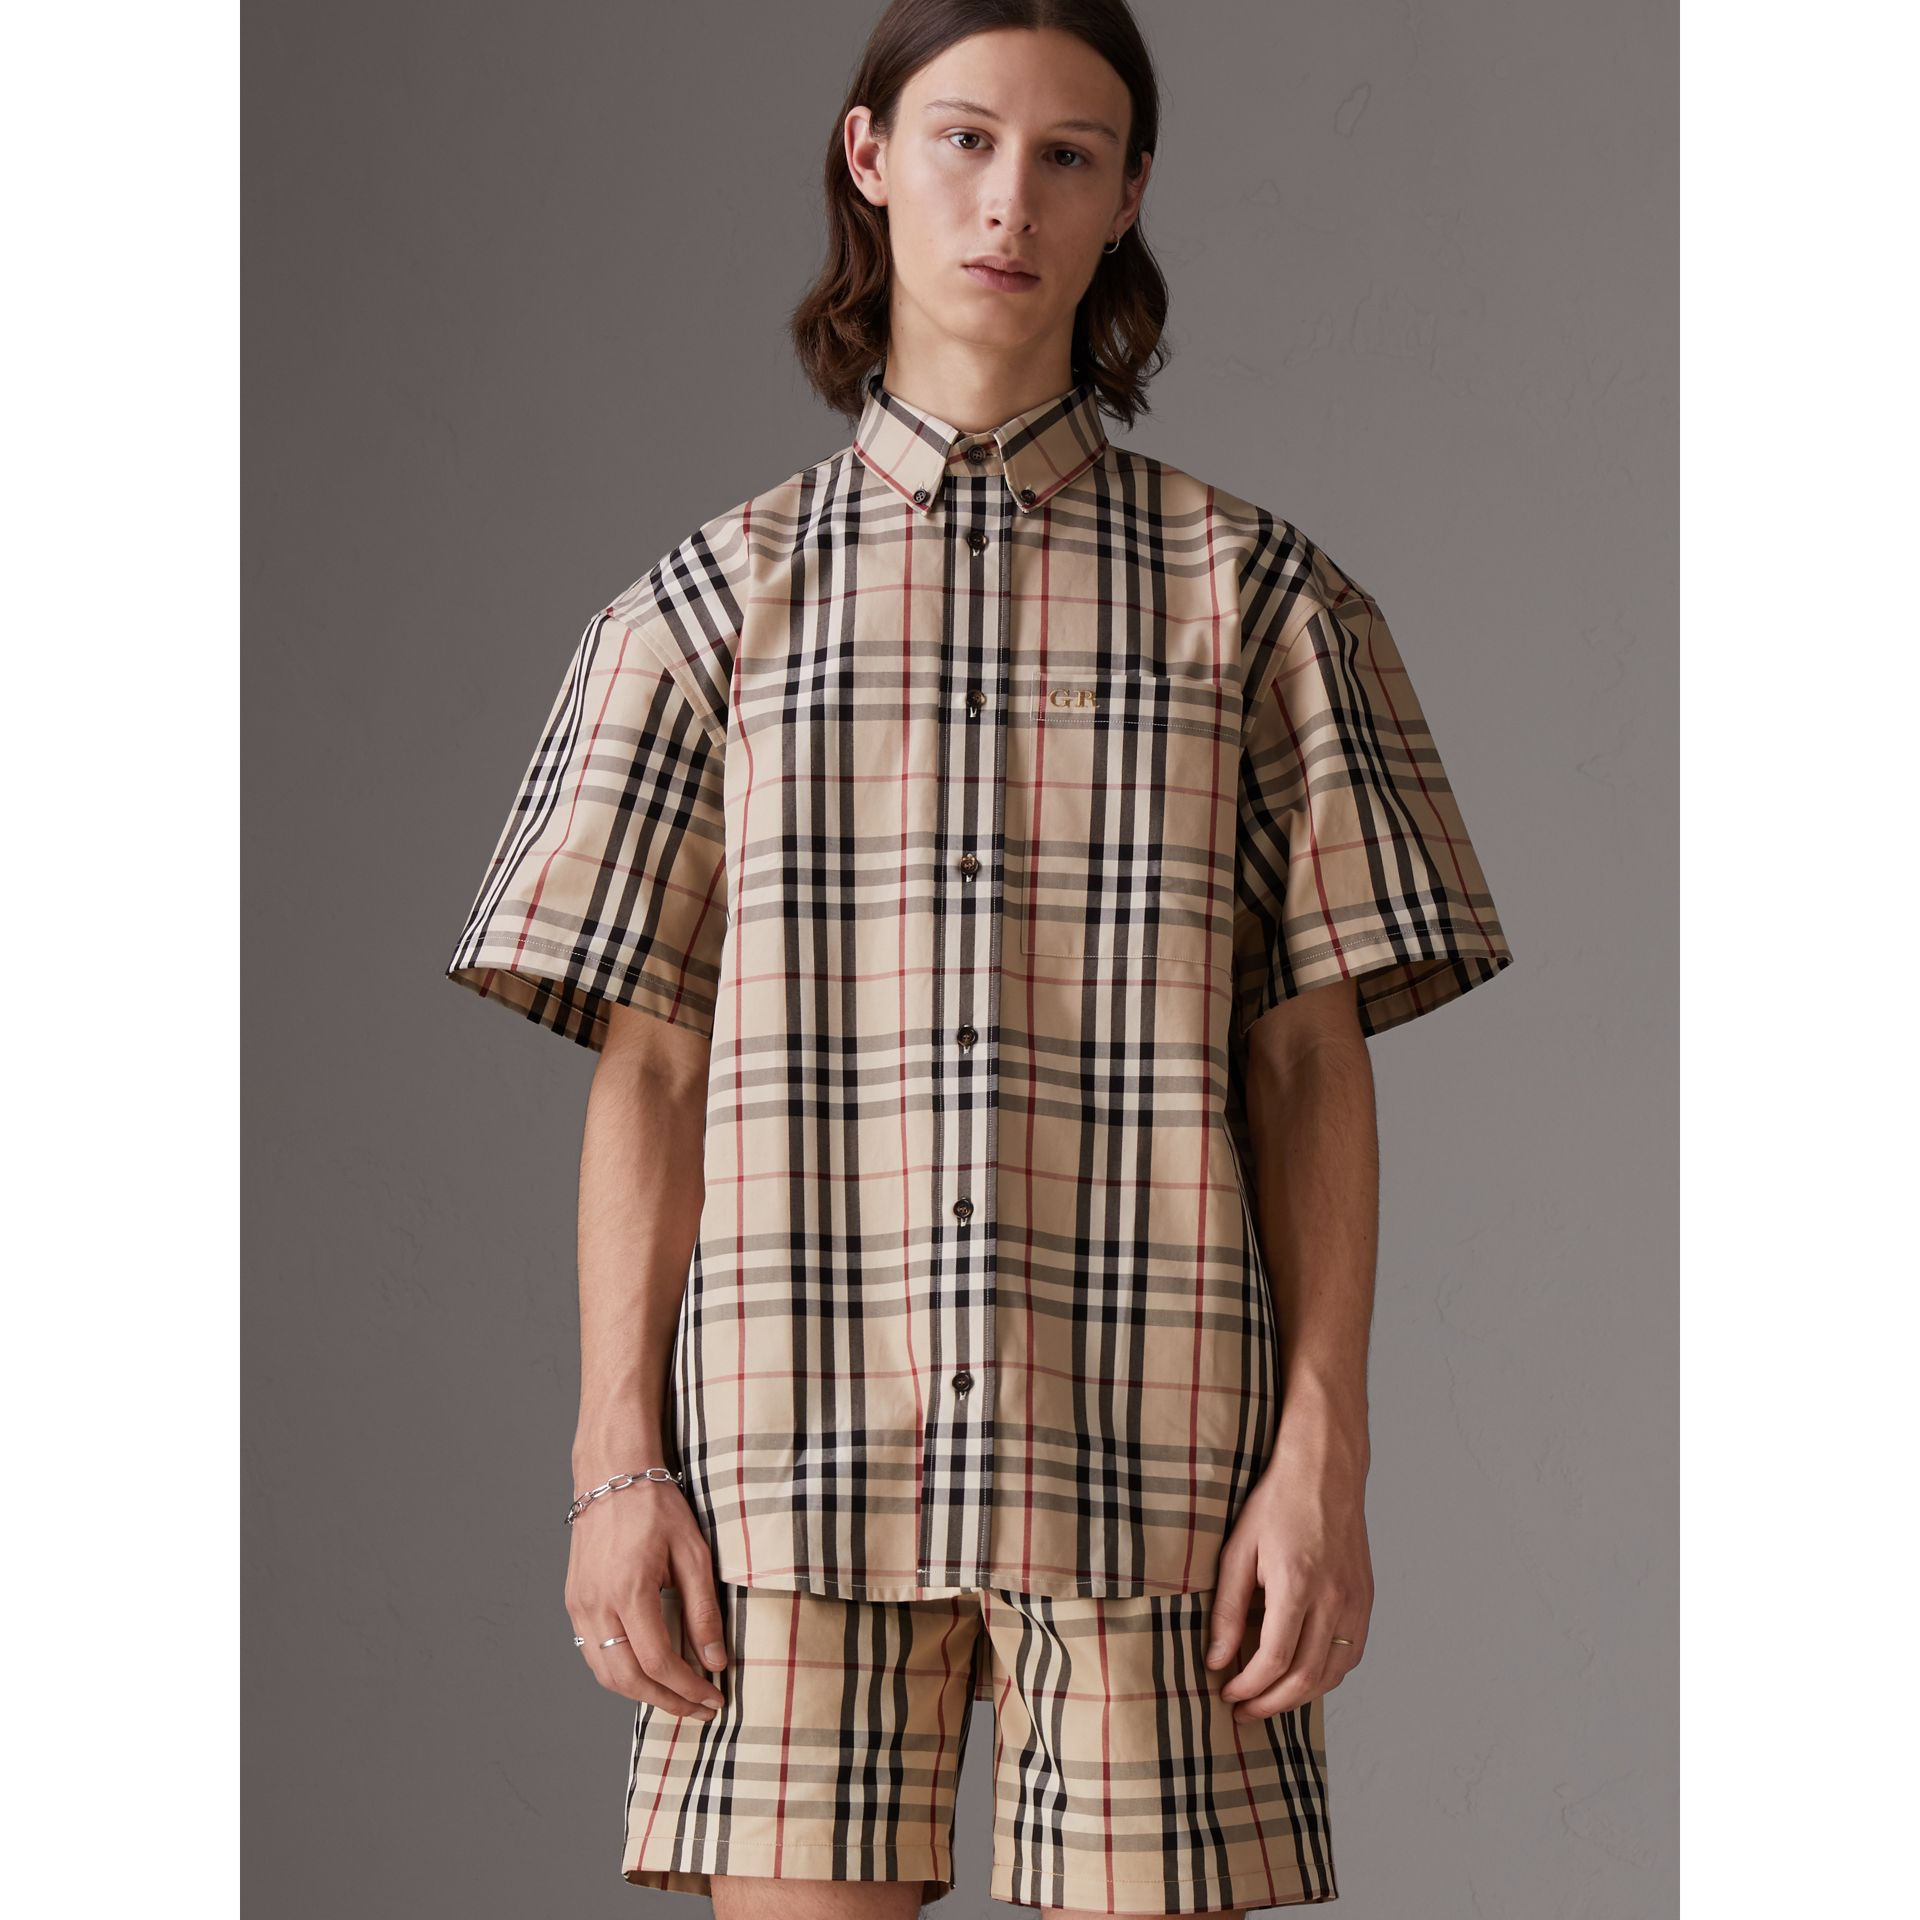 Gosha x Burberry Short-sleeve Check Shirt in Honey | Burberry Singapore - gallery image 0